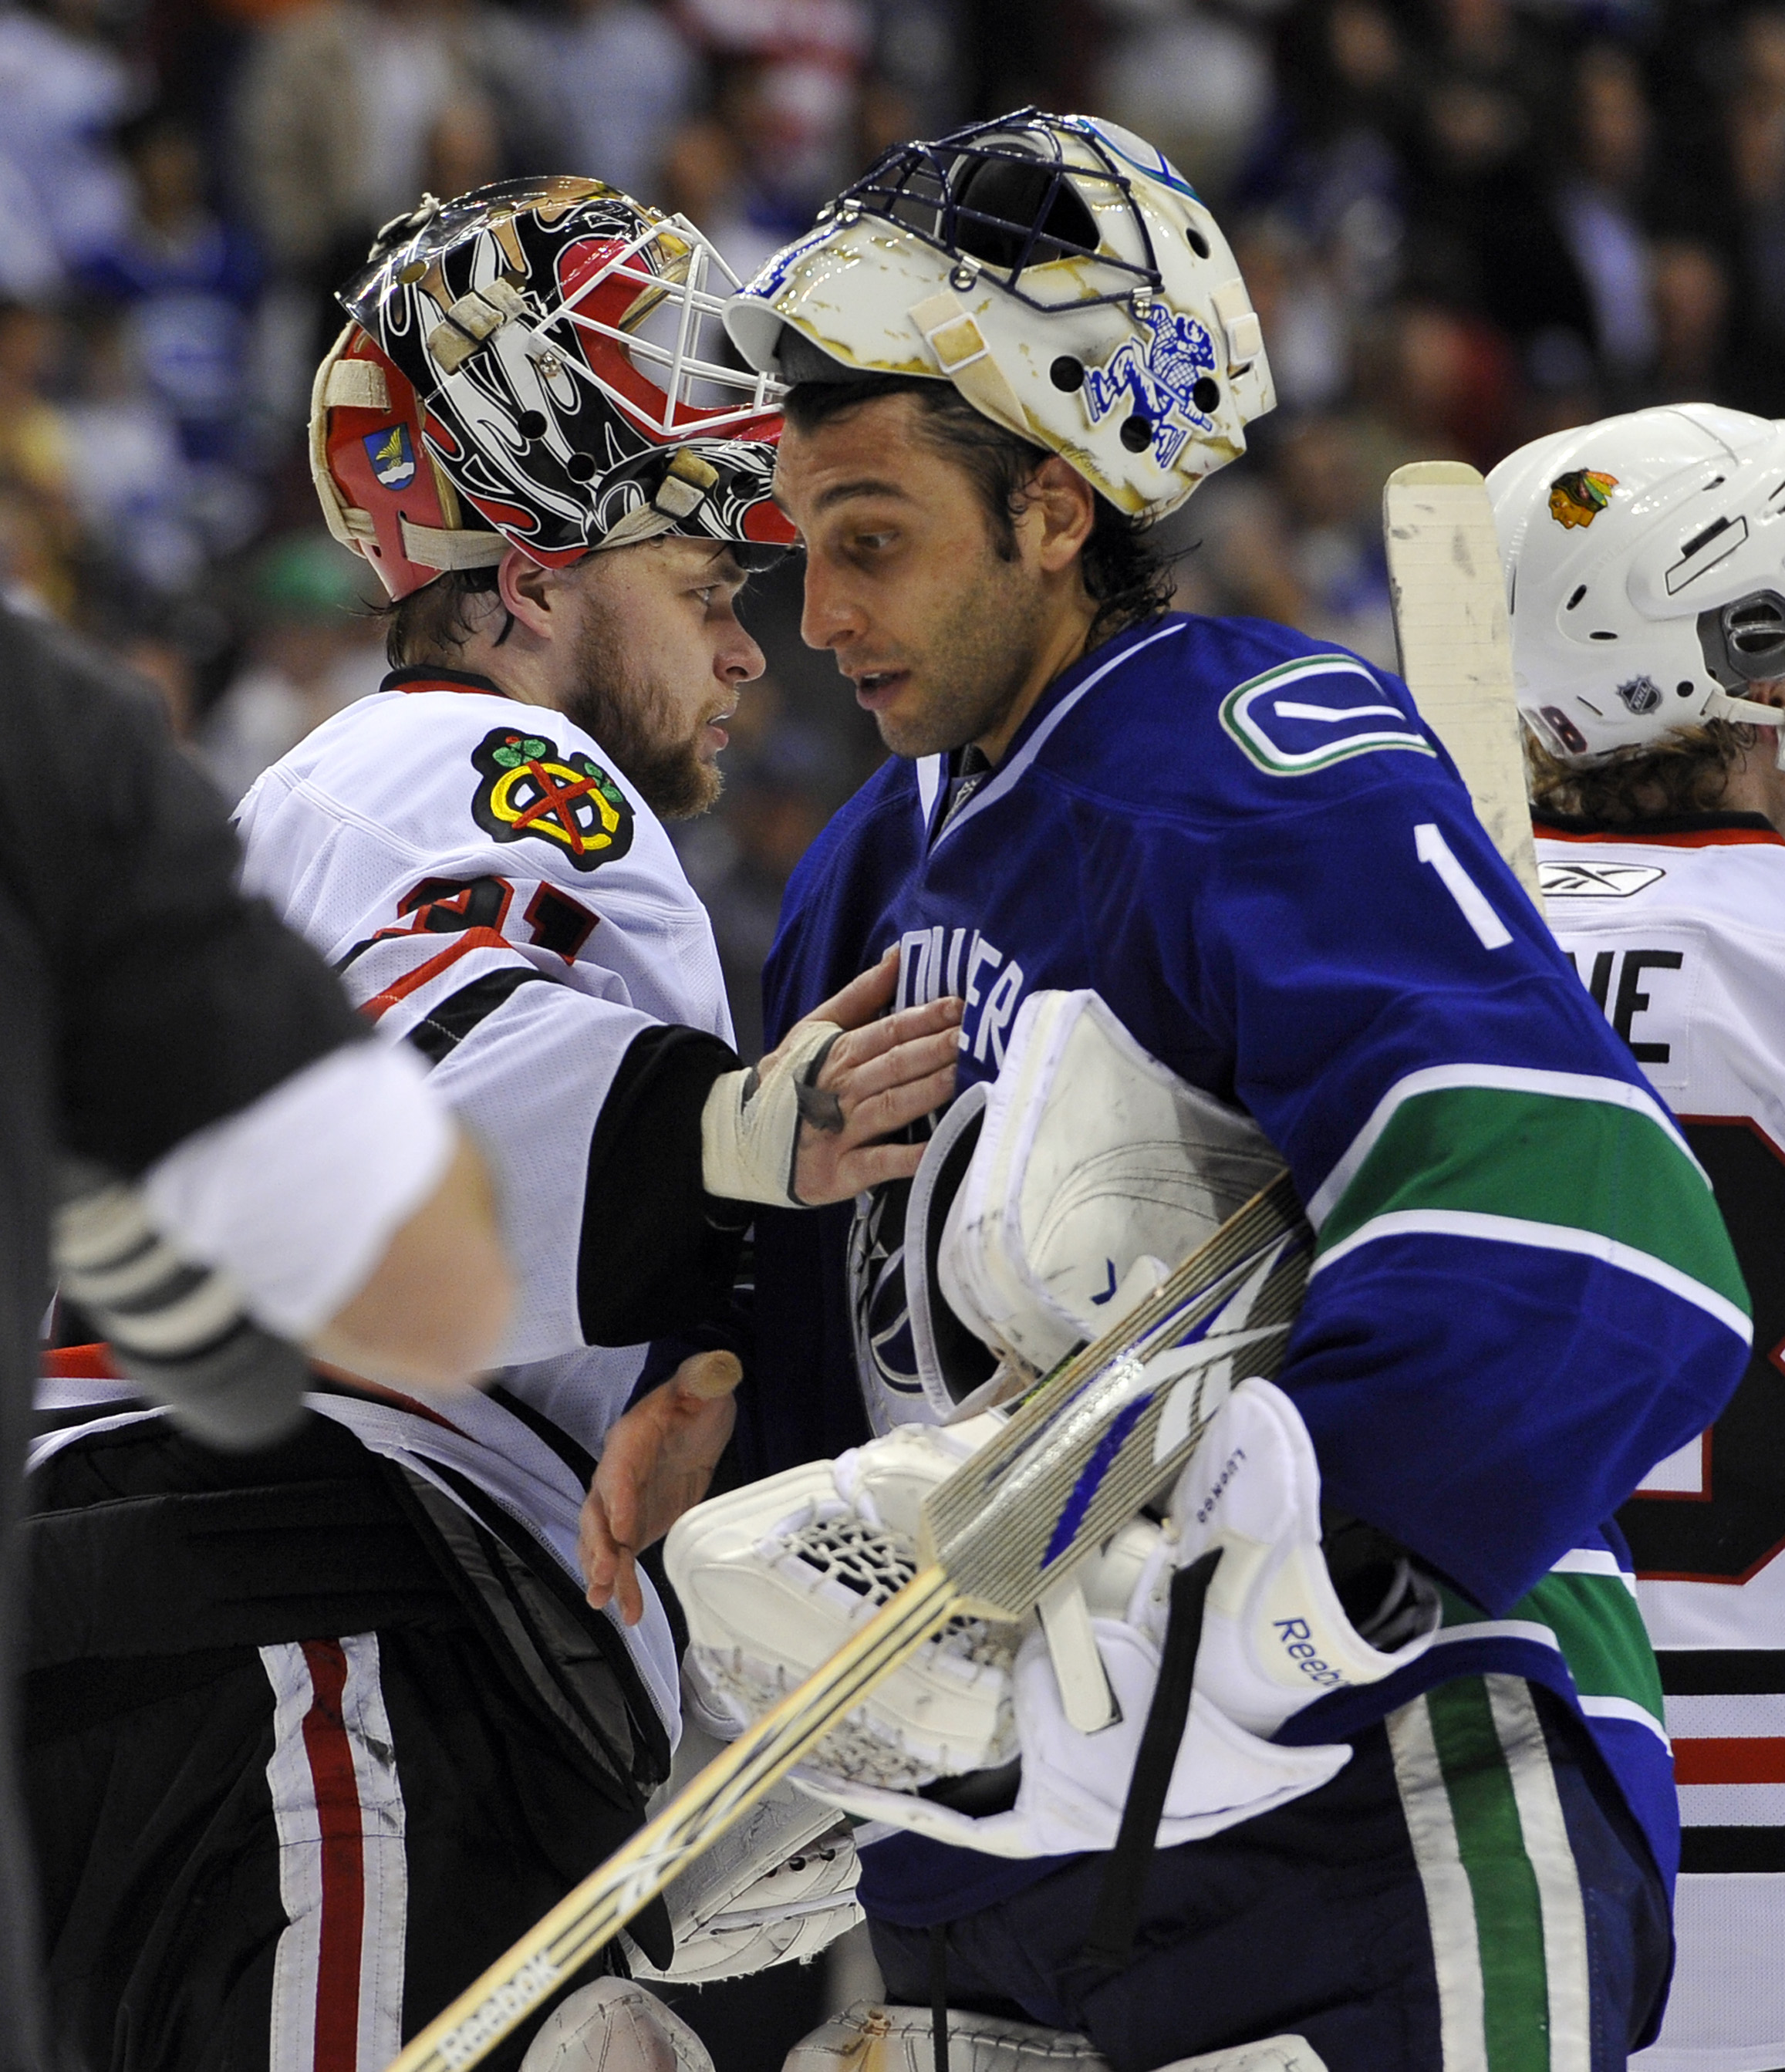 There are several reasons for Canucks fans to believe that this post season will end differently than last season did for Roberto Luongo and the Canucks.